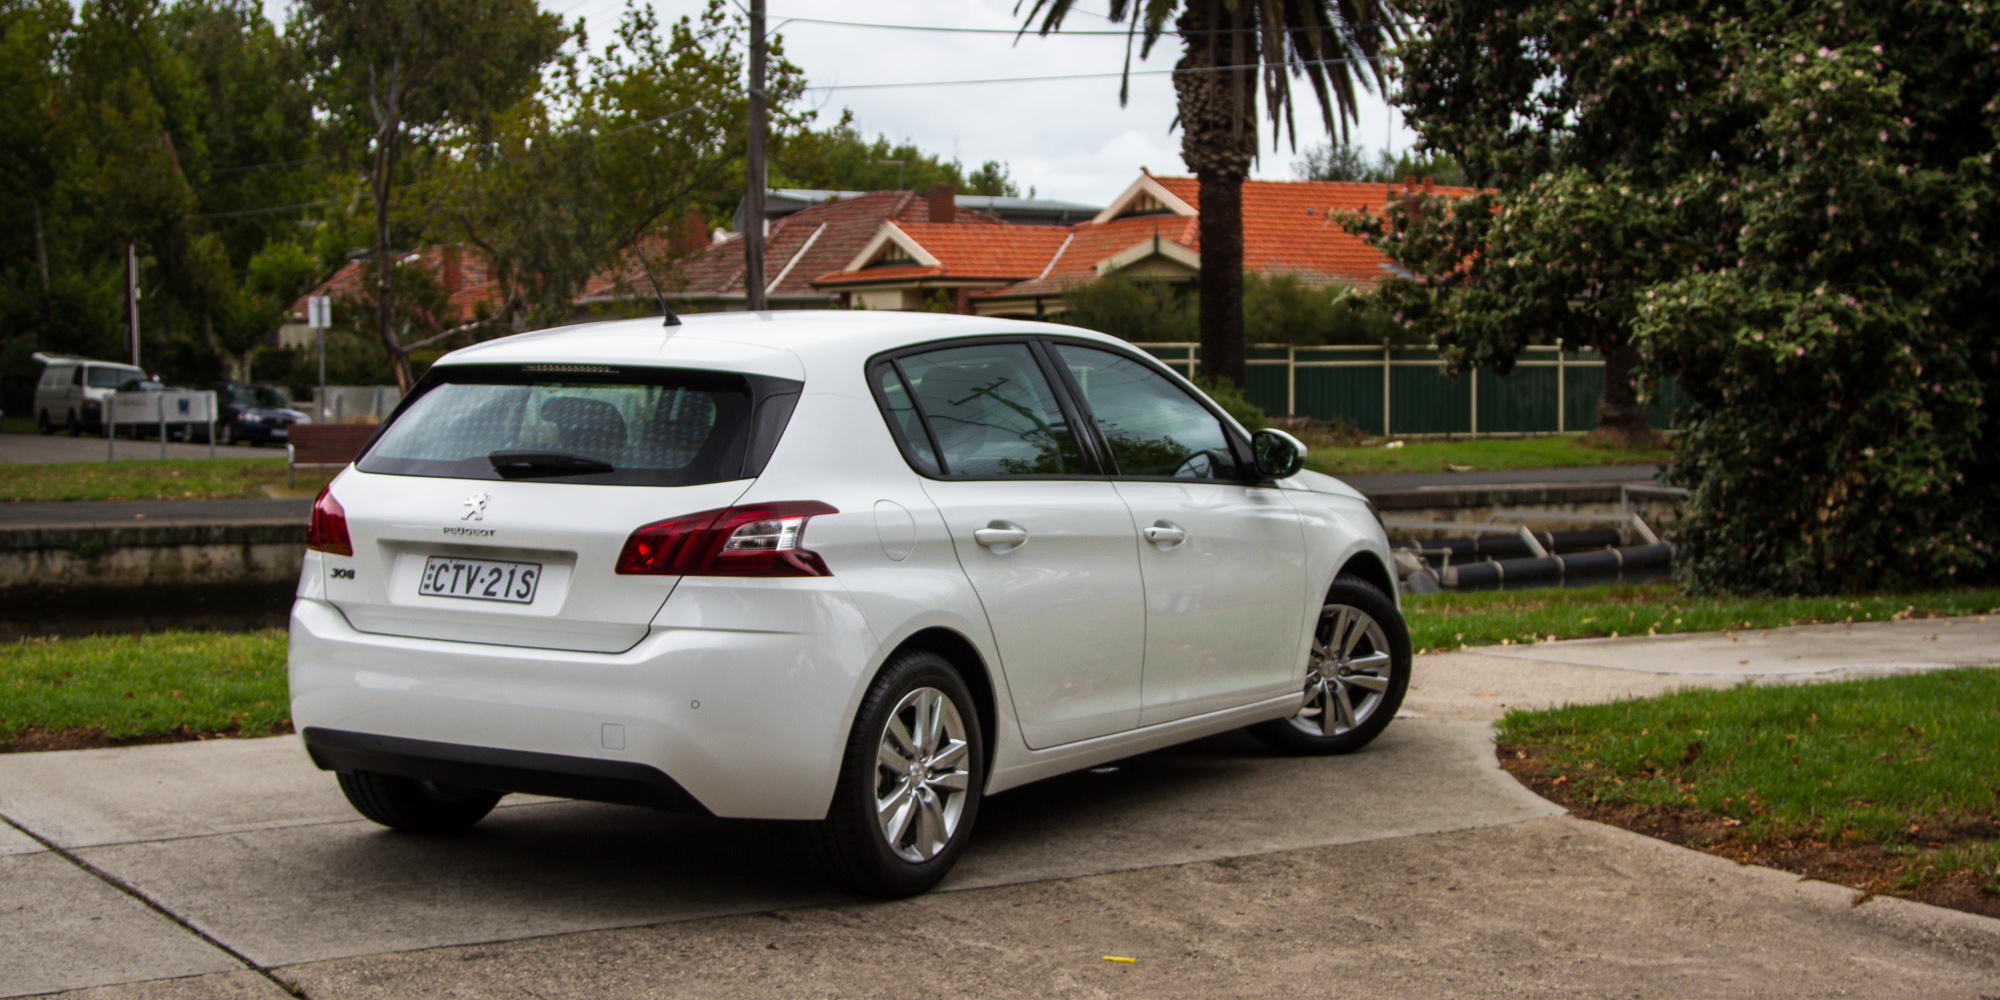 2015 peugeot 308 active review | caradvice